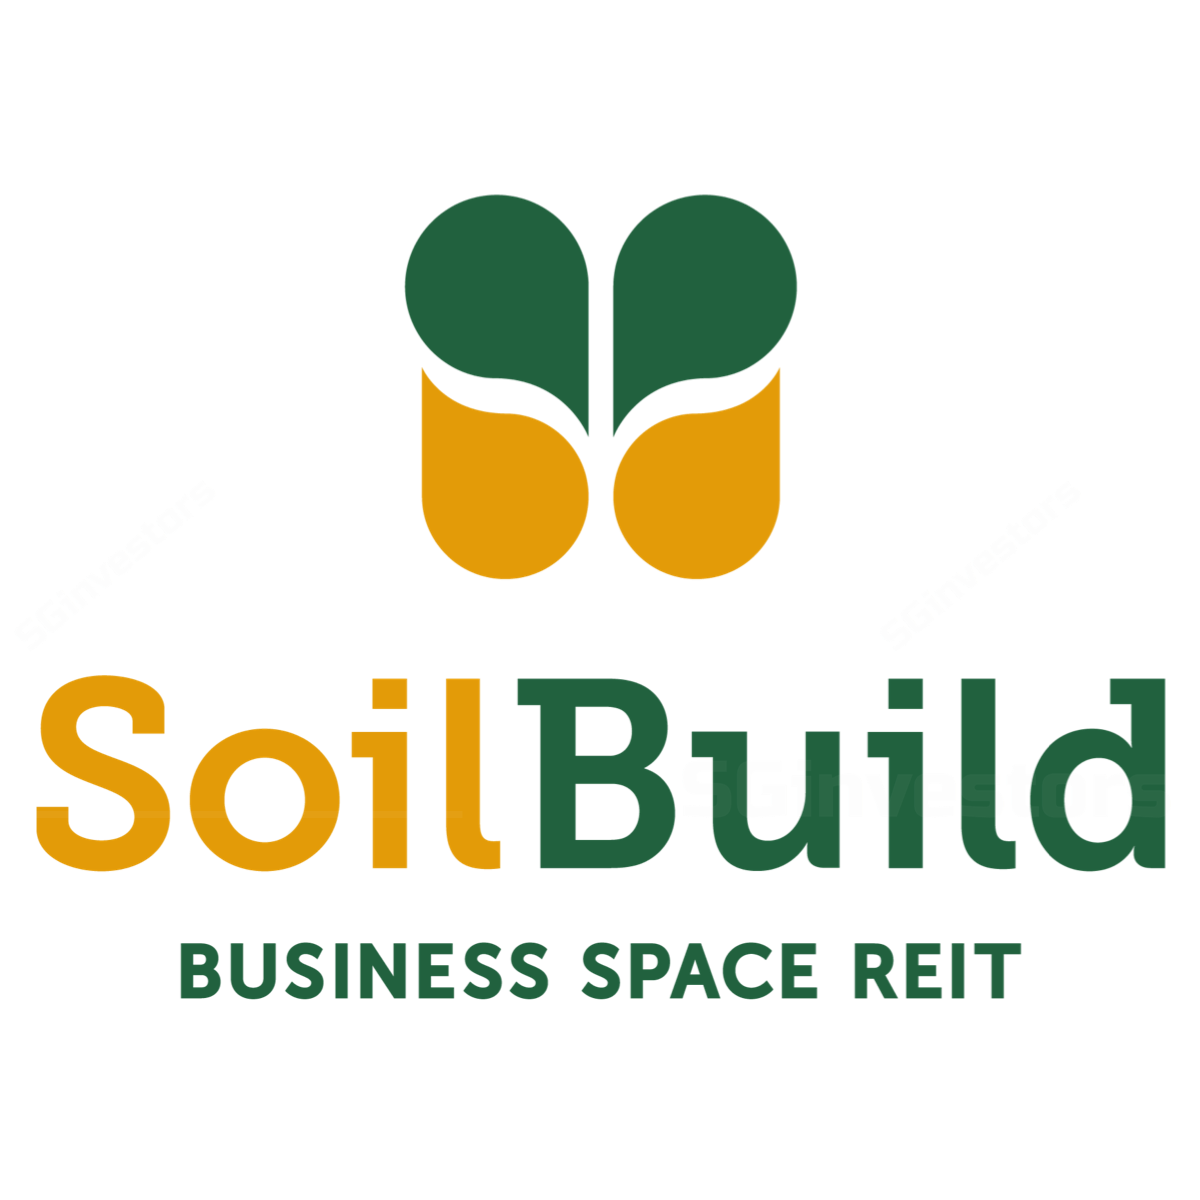 Soilbuild Business Space REIT - DBS Group Research 2018-09-07: Leapfrogging Into Australia